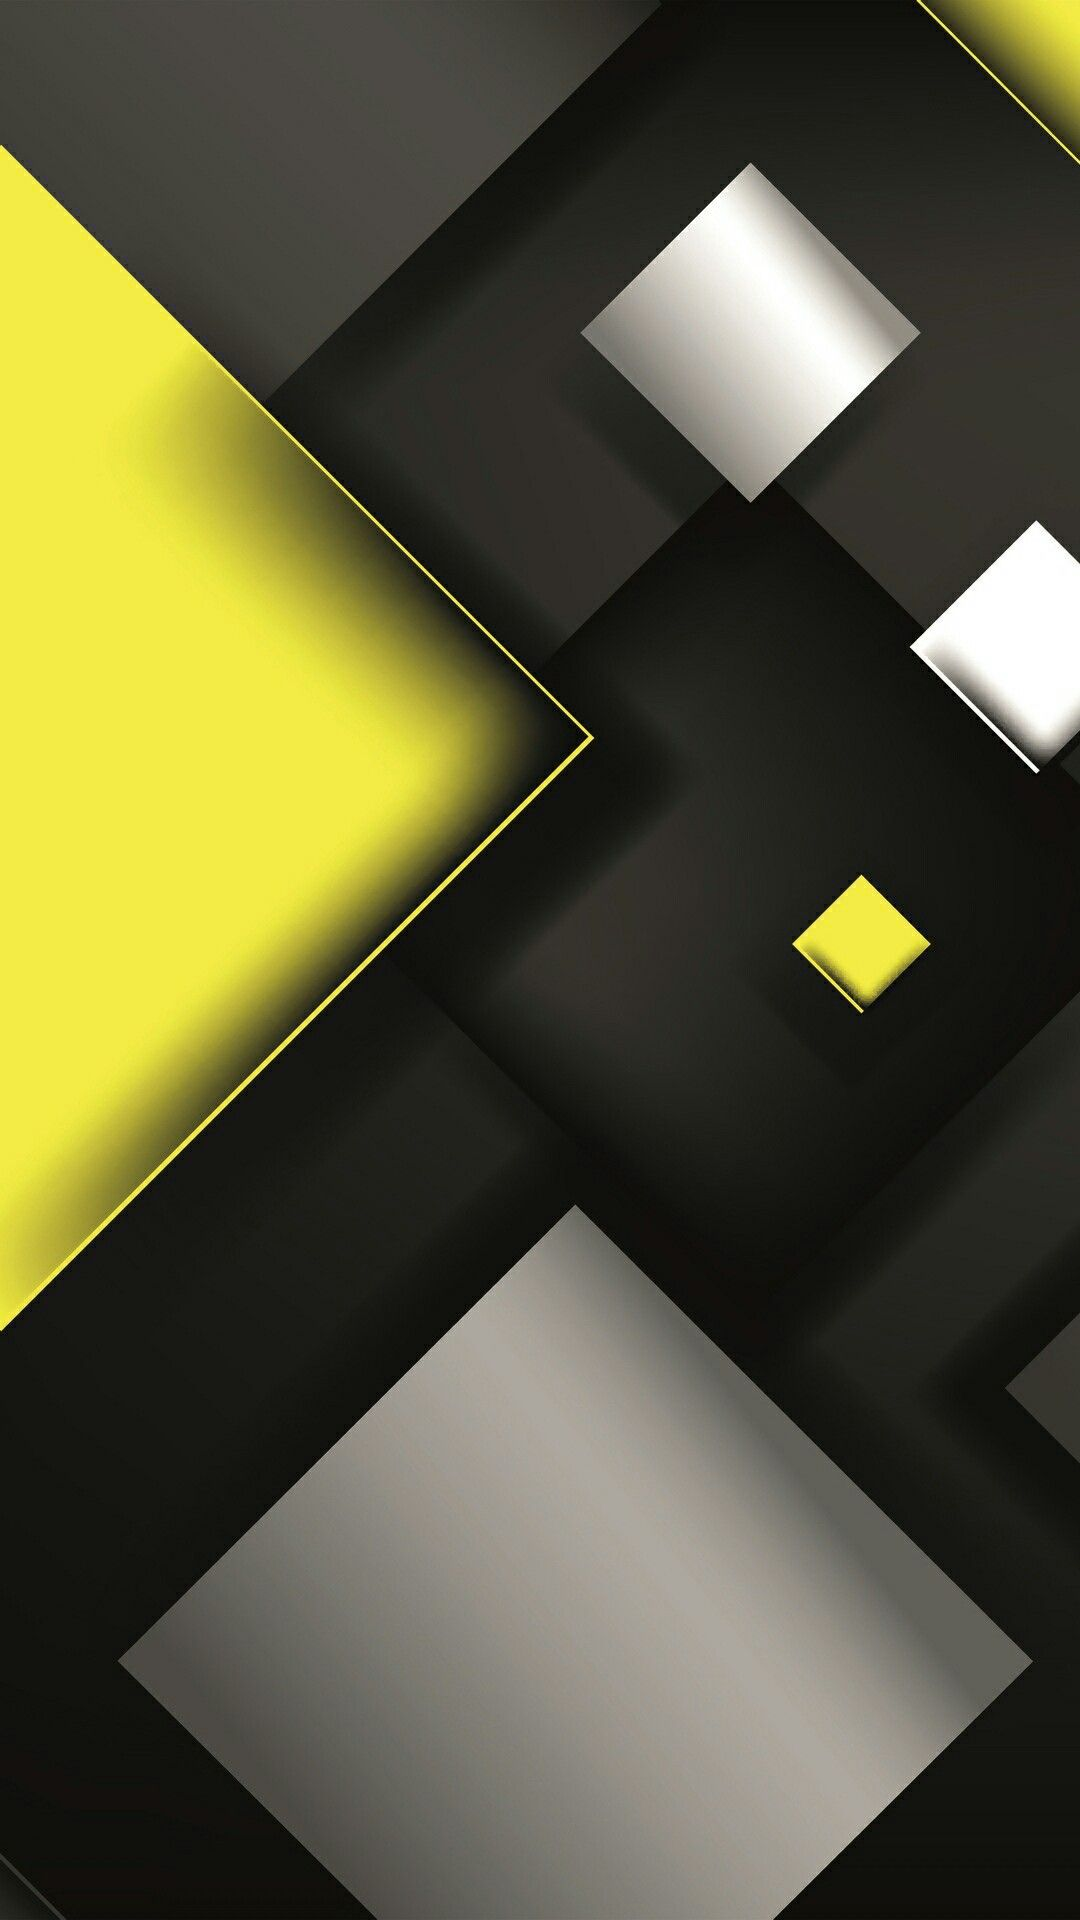 Pin By Wurth It On Metarial Desing Android Wallpaper Abstract Wallpaper Cellphone Wallpaper